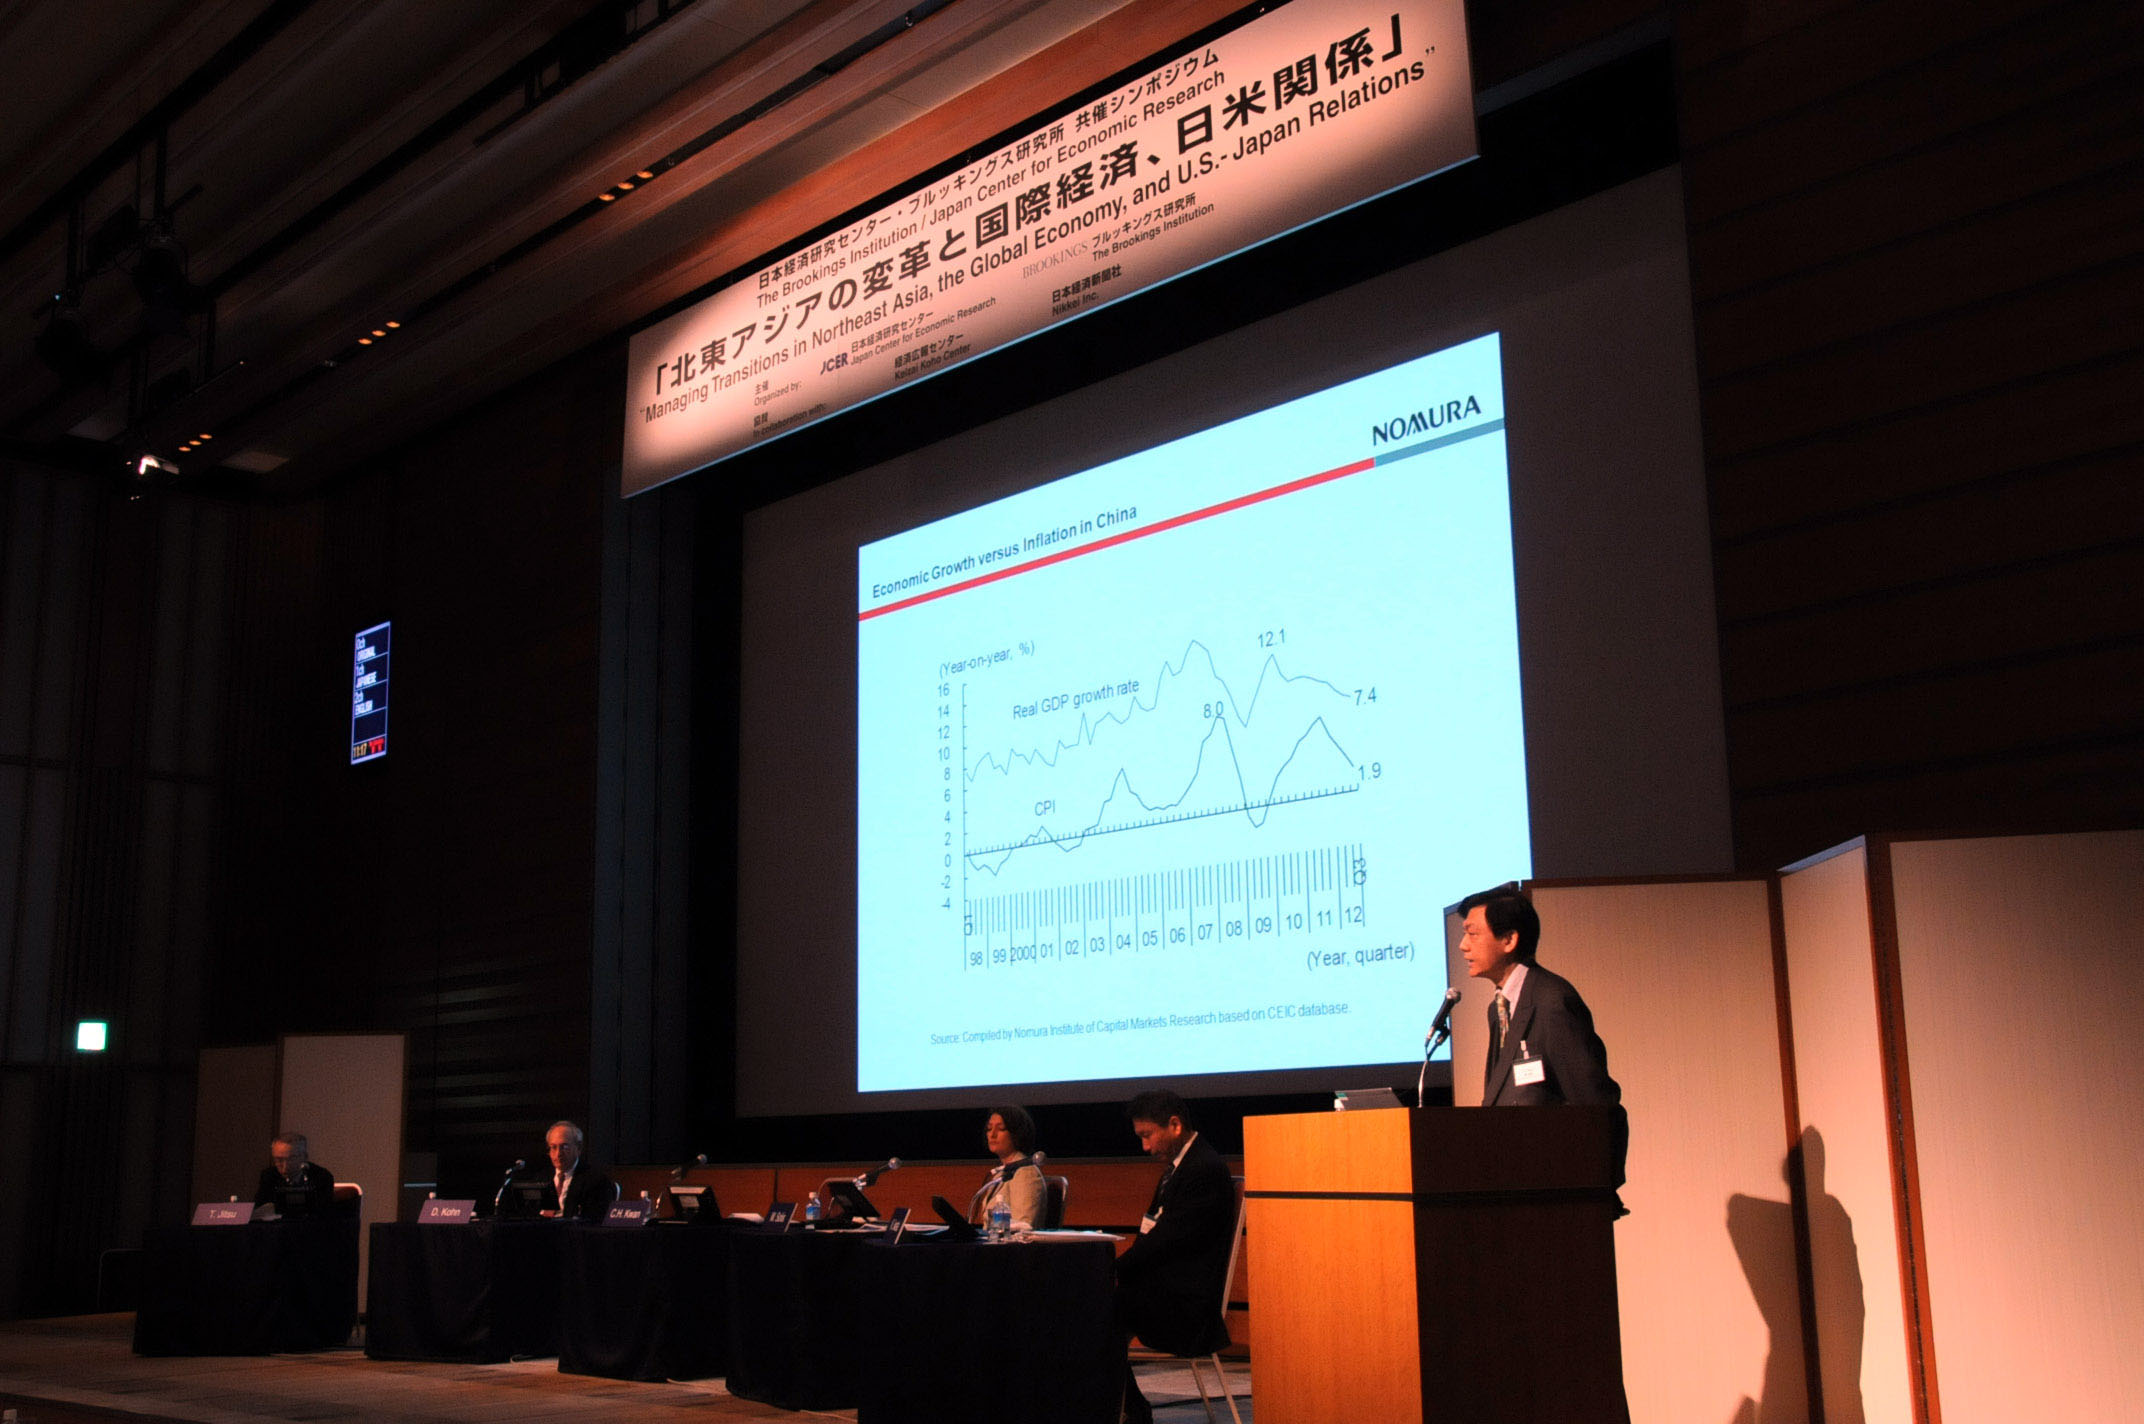 Kwan Chi Hung from the Nomura Institute of Capital Markets Research discusses the prospect of China's economic growth during a symposium held on Nov. 28 at Keidanren Kaikan in Tokyo. | SATOKO KAWASAKI